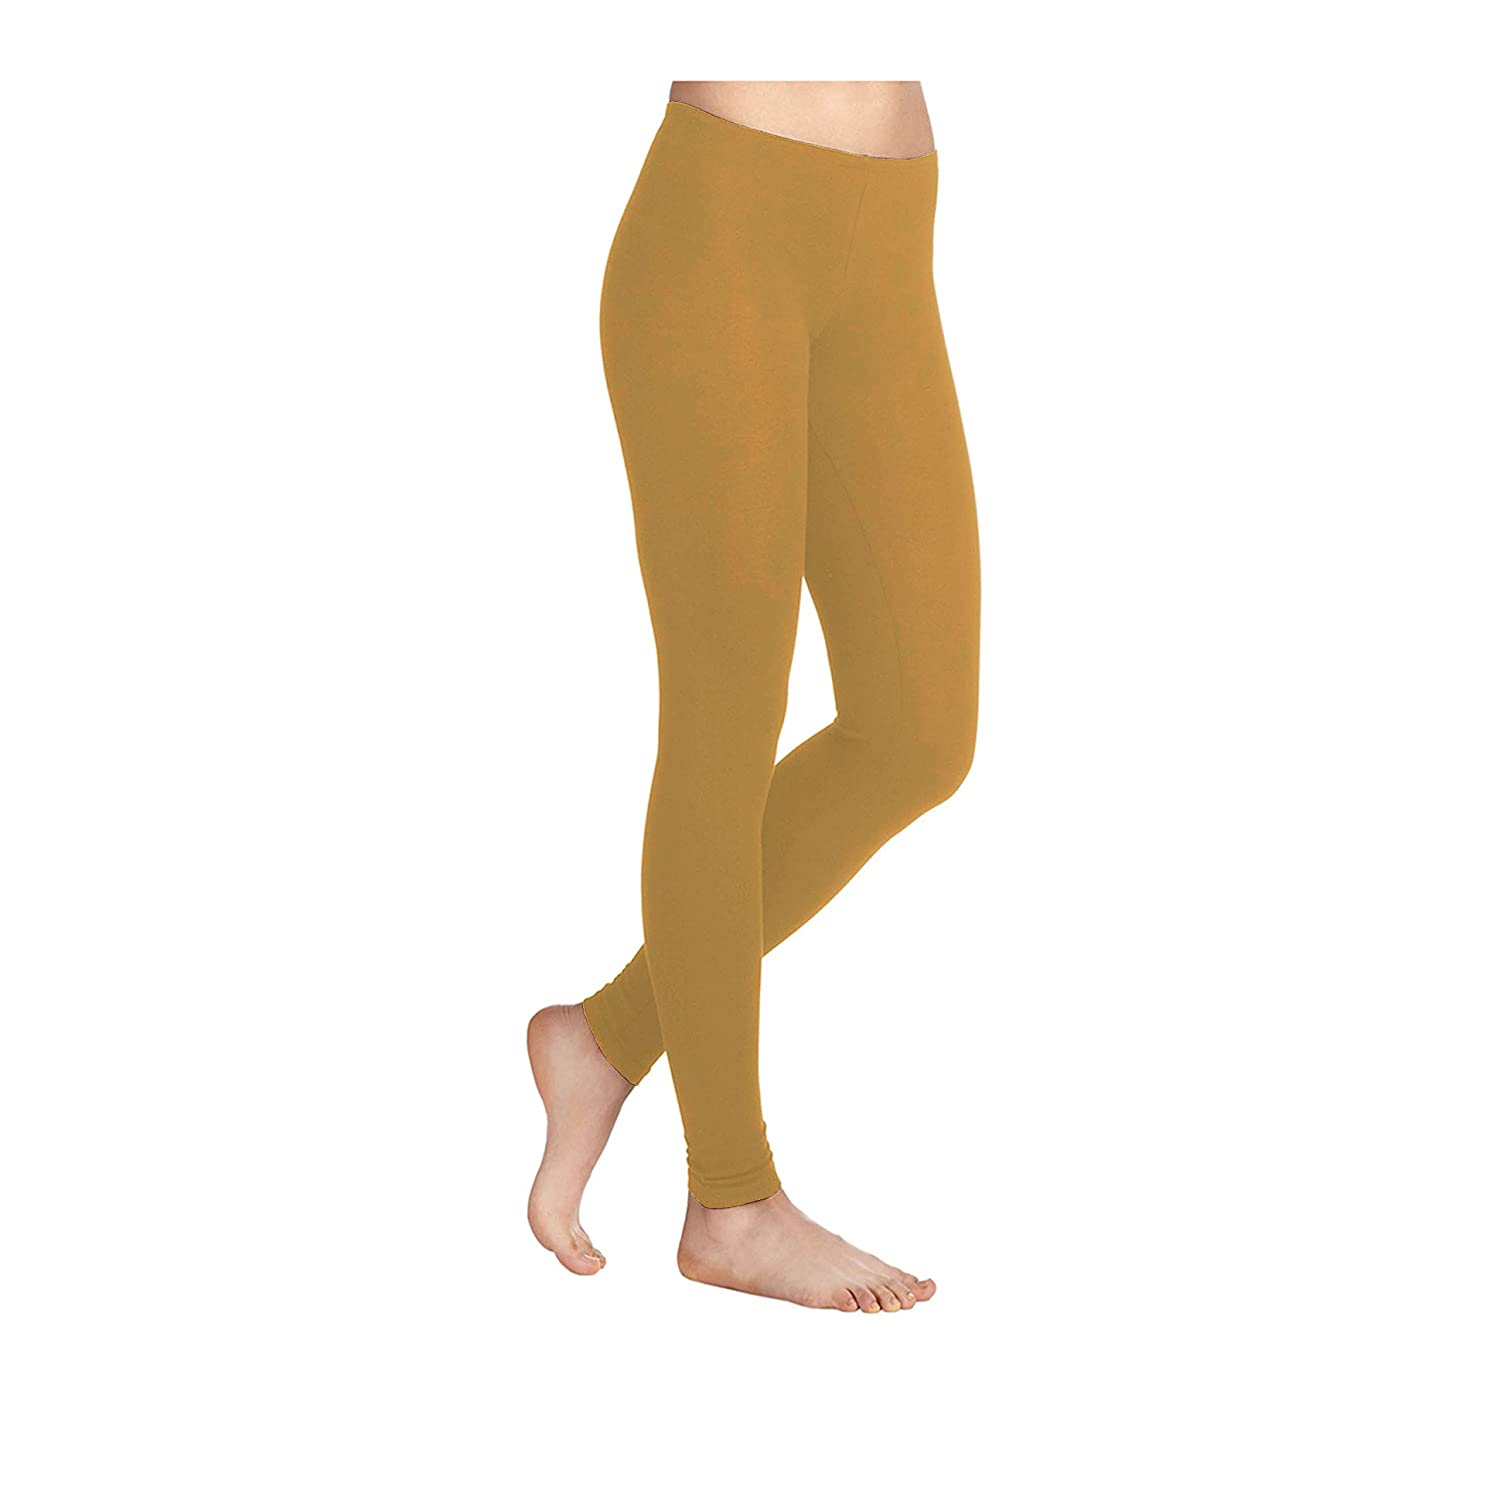 LessThanTenQuid Missloved ™ Plain Stretchy Viscose Lycra Leggings Sizes UK 8-26 * 30 Colours*